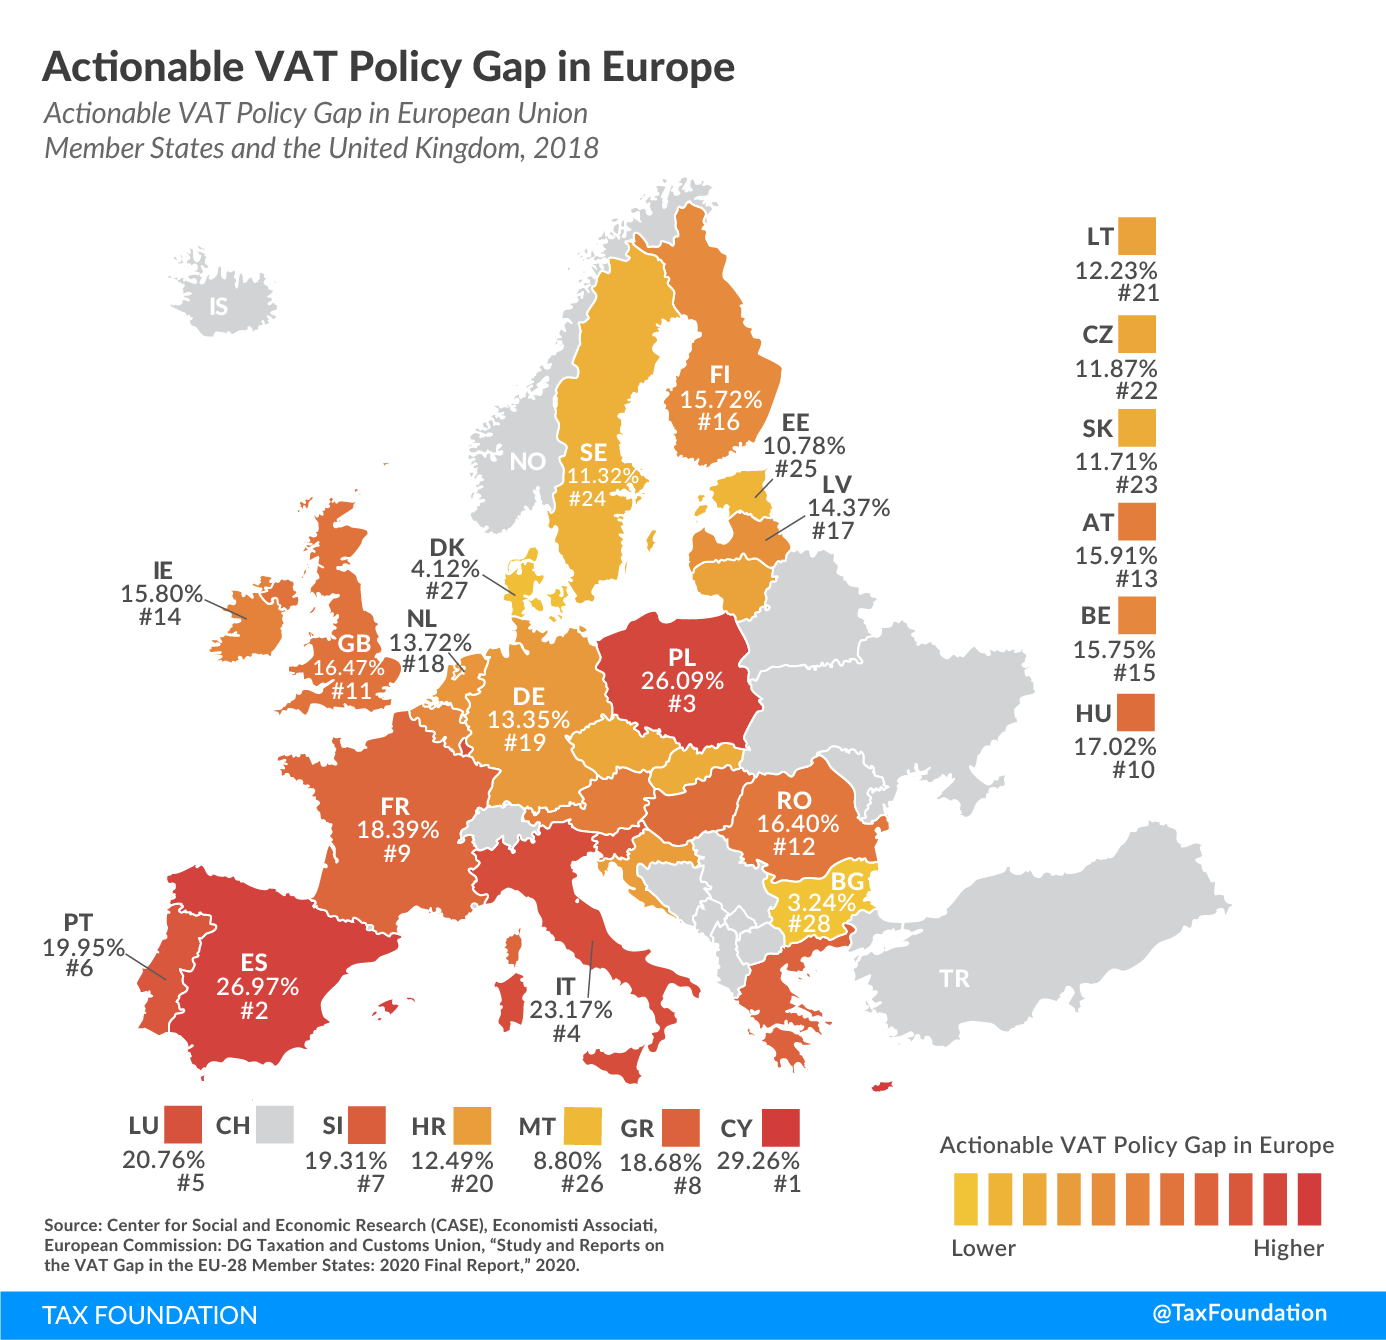 Value-added taxes (VAT) make up approximately one-fifth of total tax revenues in Europe. Actionable VAT Policy Gap in Europe